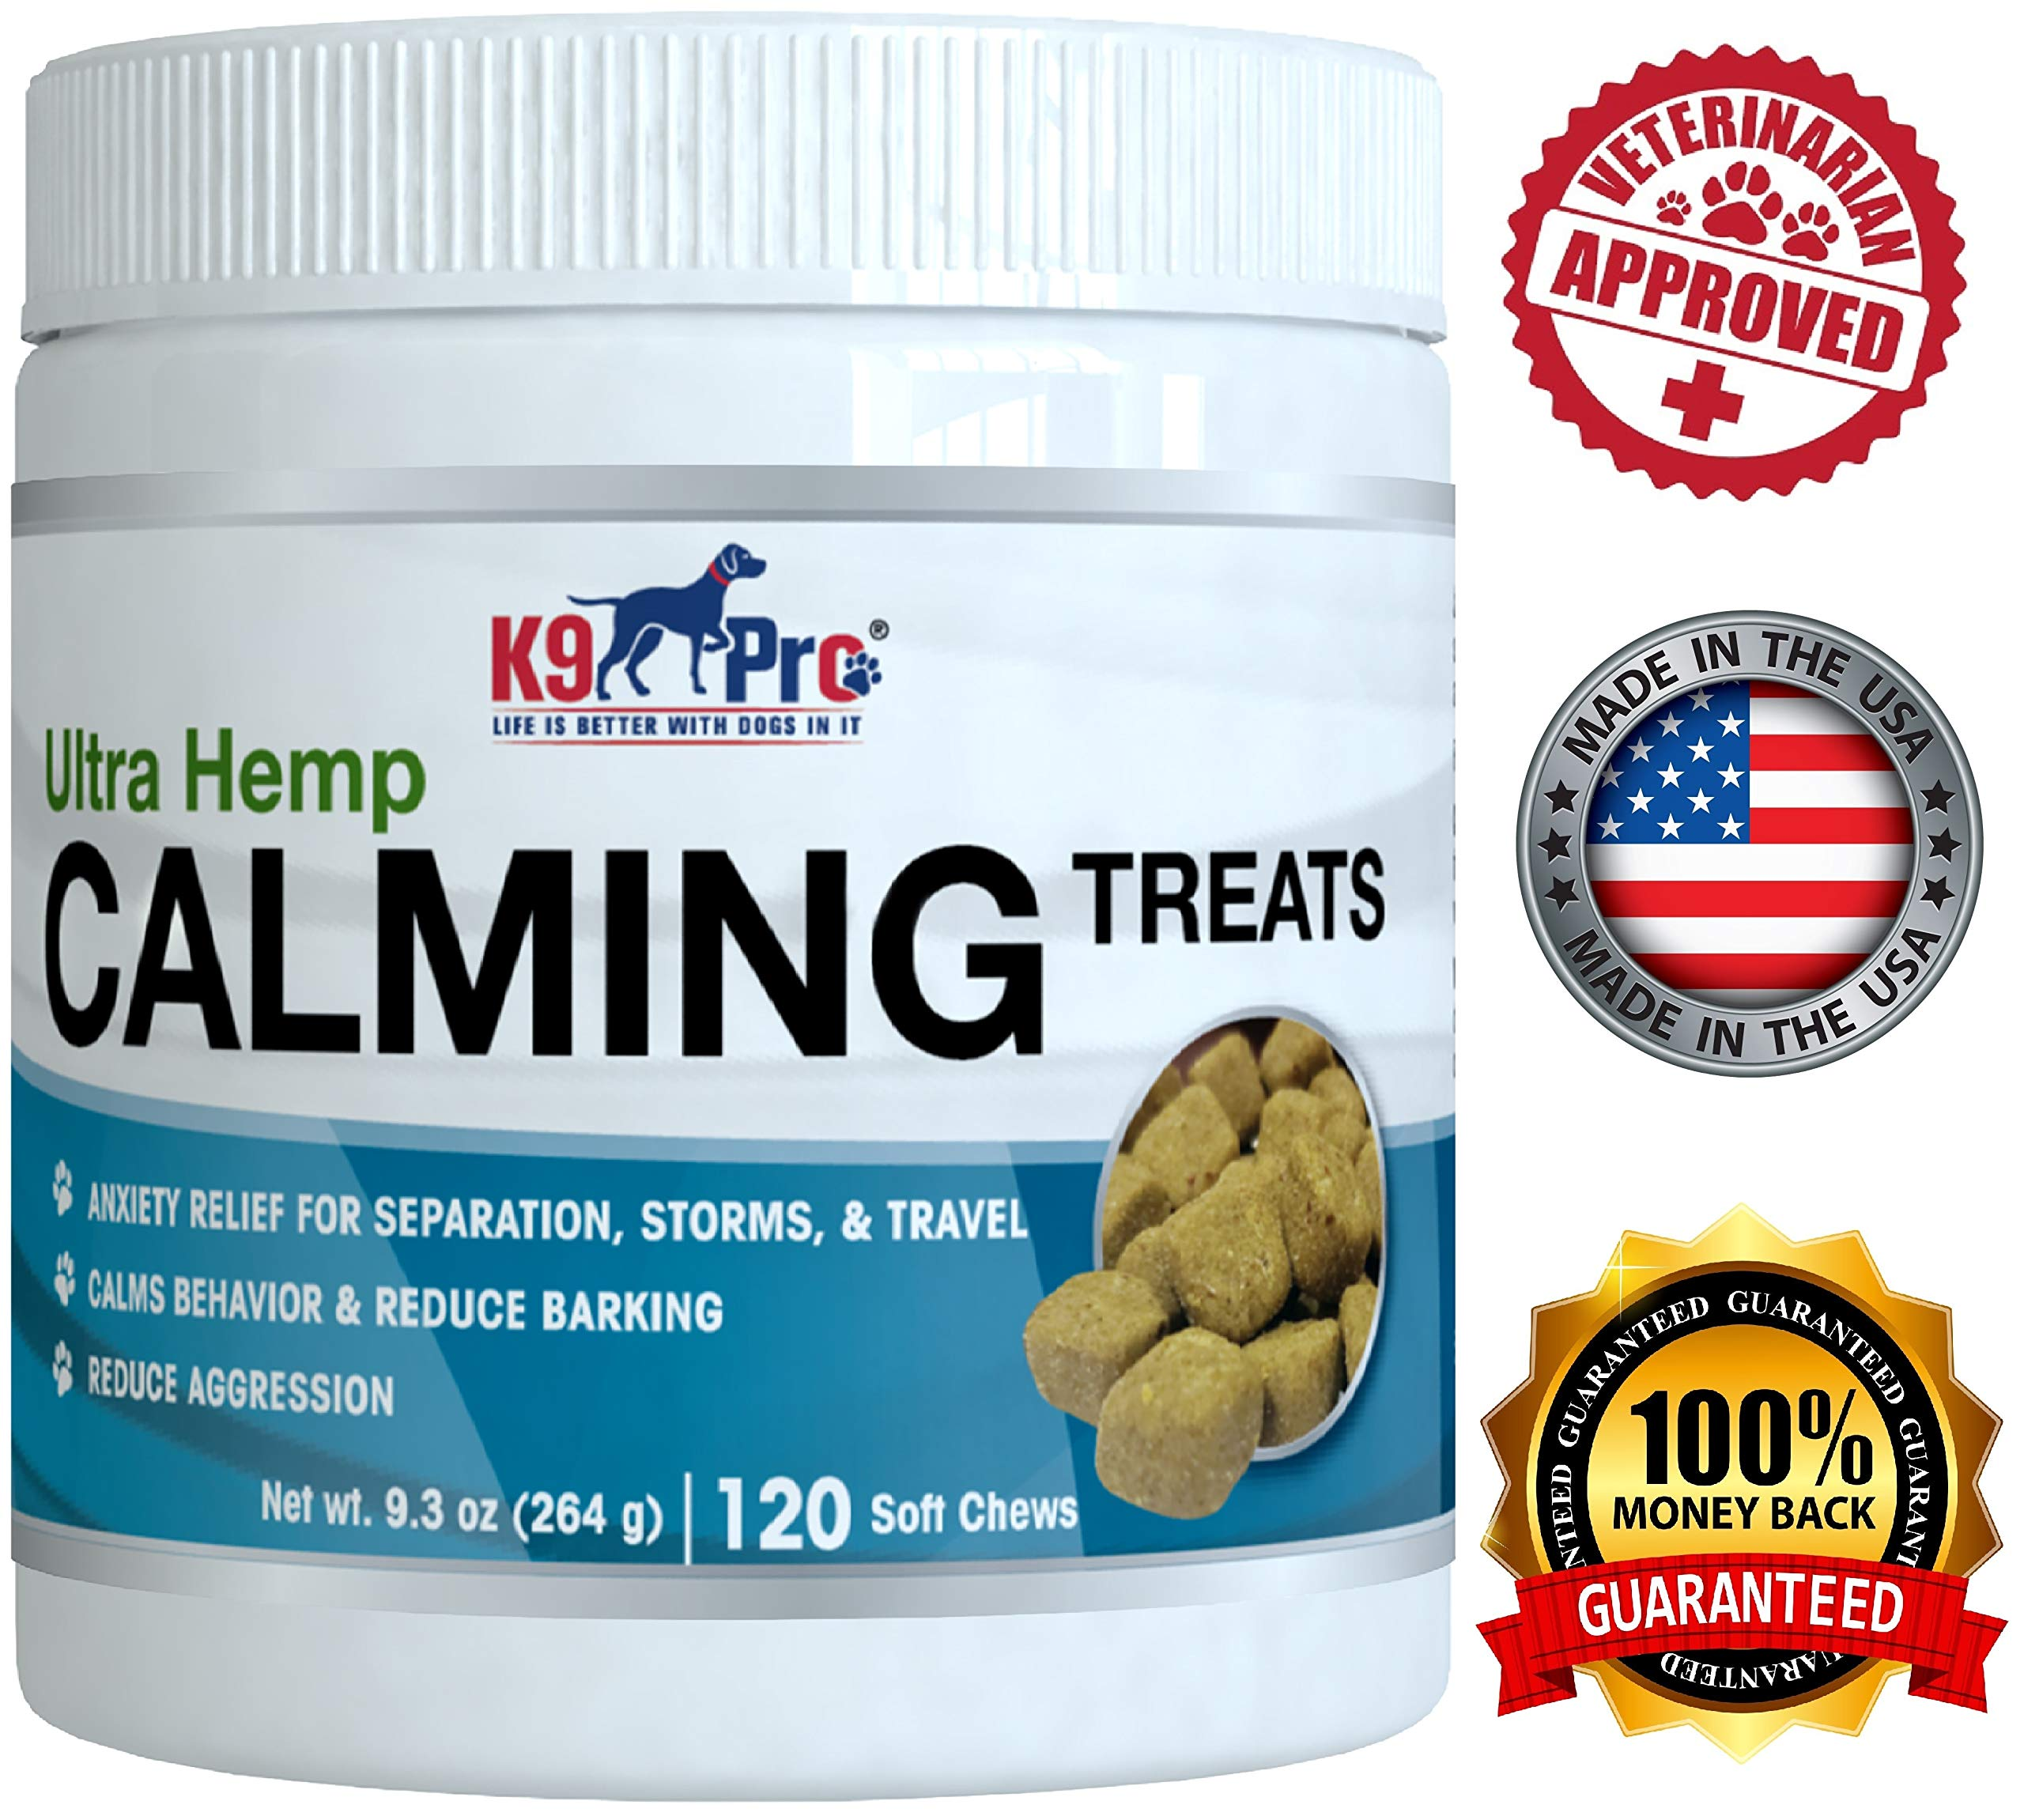 K9 Pro Calming Treats for Dogs - Tasty Hemp Anxiety Relief Chews Aid Composure and Reduce Stress Separation - Calm Behavior for Barking Storms Fireworks and Travel - Reduce Aggression by K9 Pro